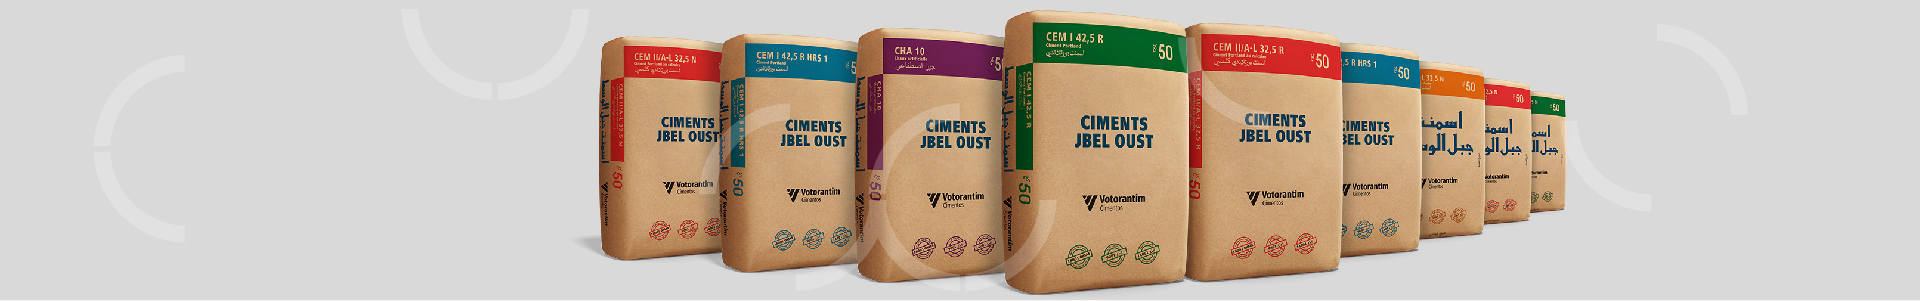 Ciments Jbel Oust offers tailor-made solutions for costumers